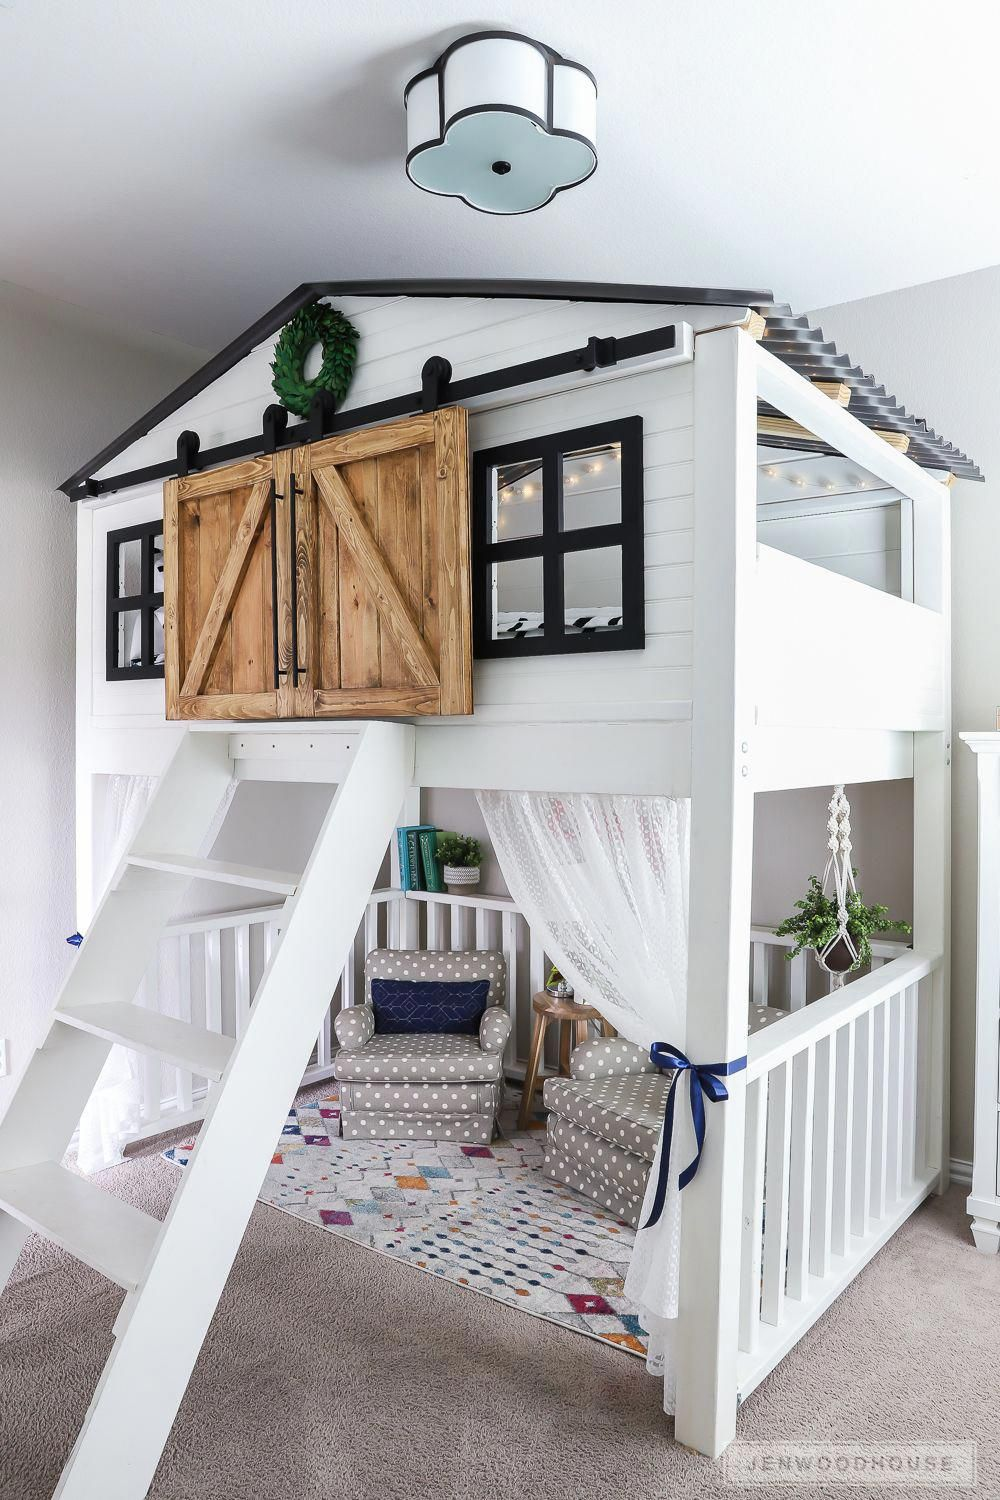 Do It Yourself Home Design: Adorable Kids Room With Amazing Loft Bed With Sliding Barn